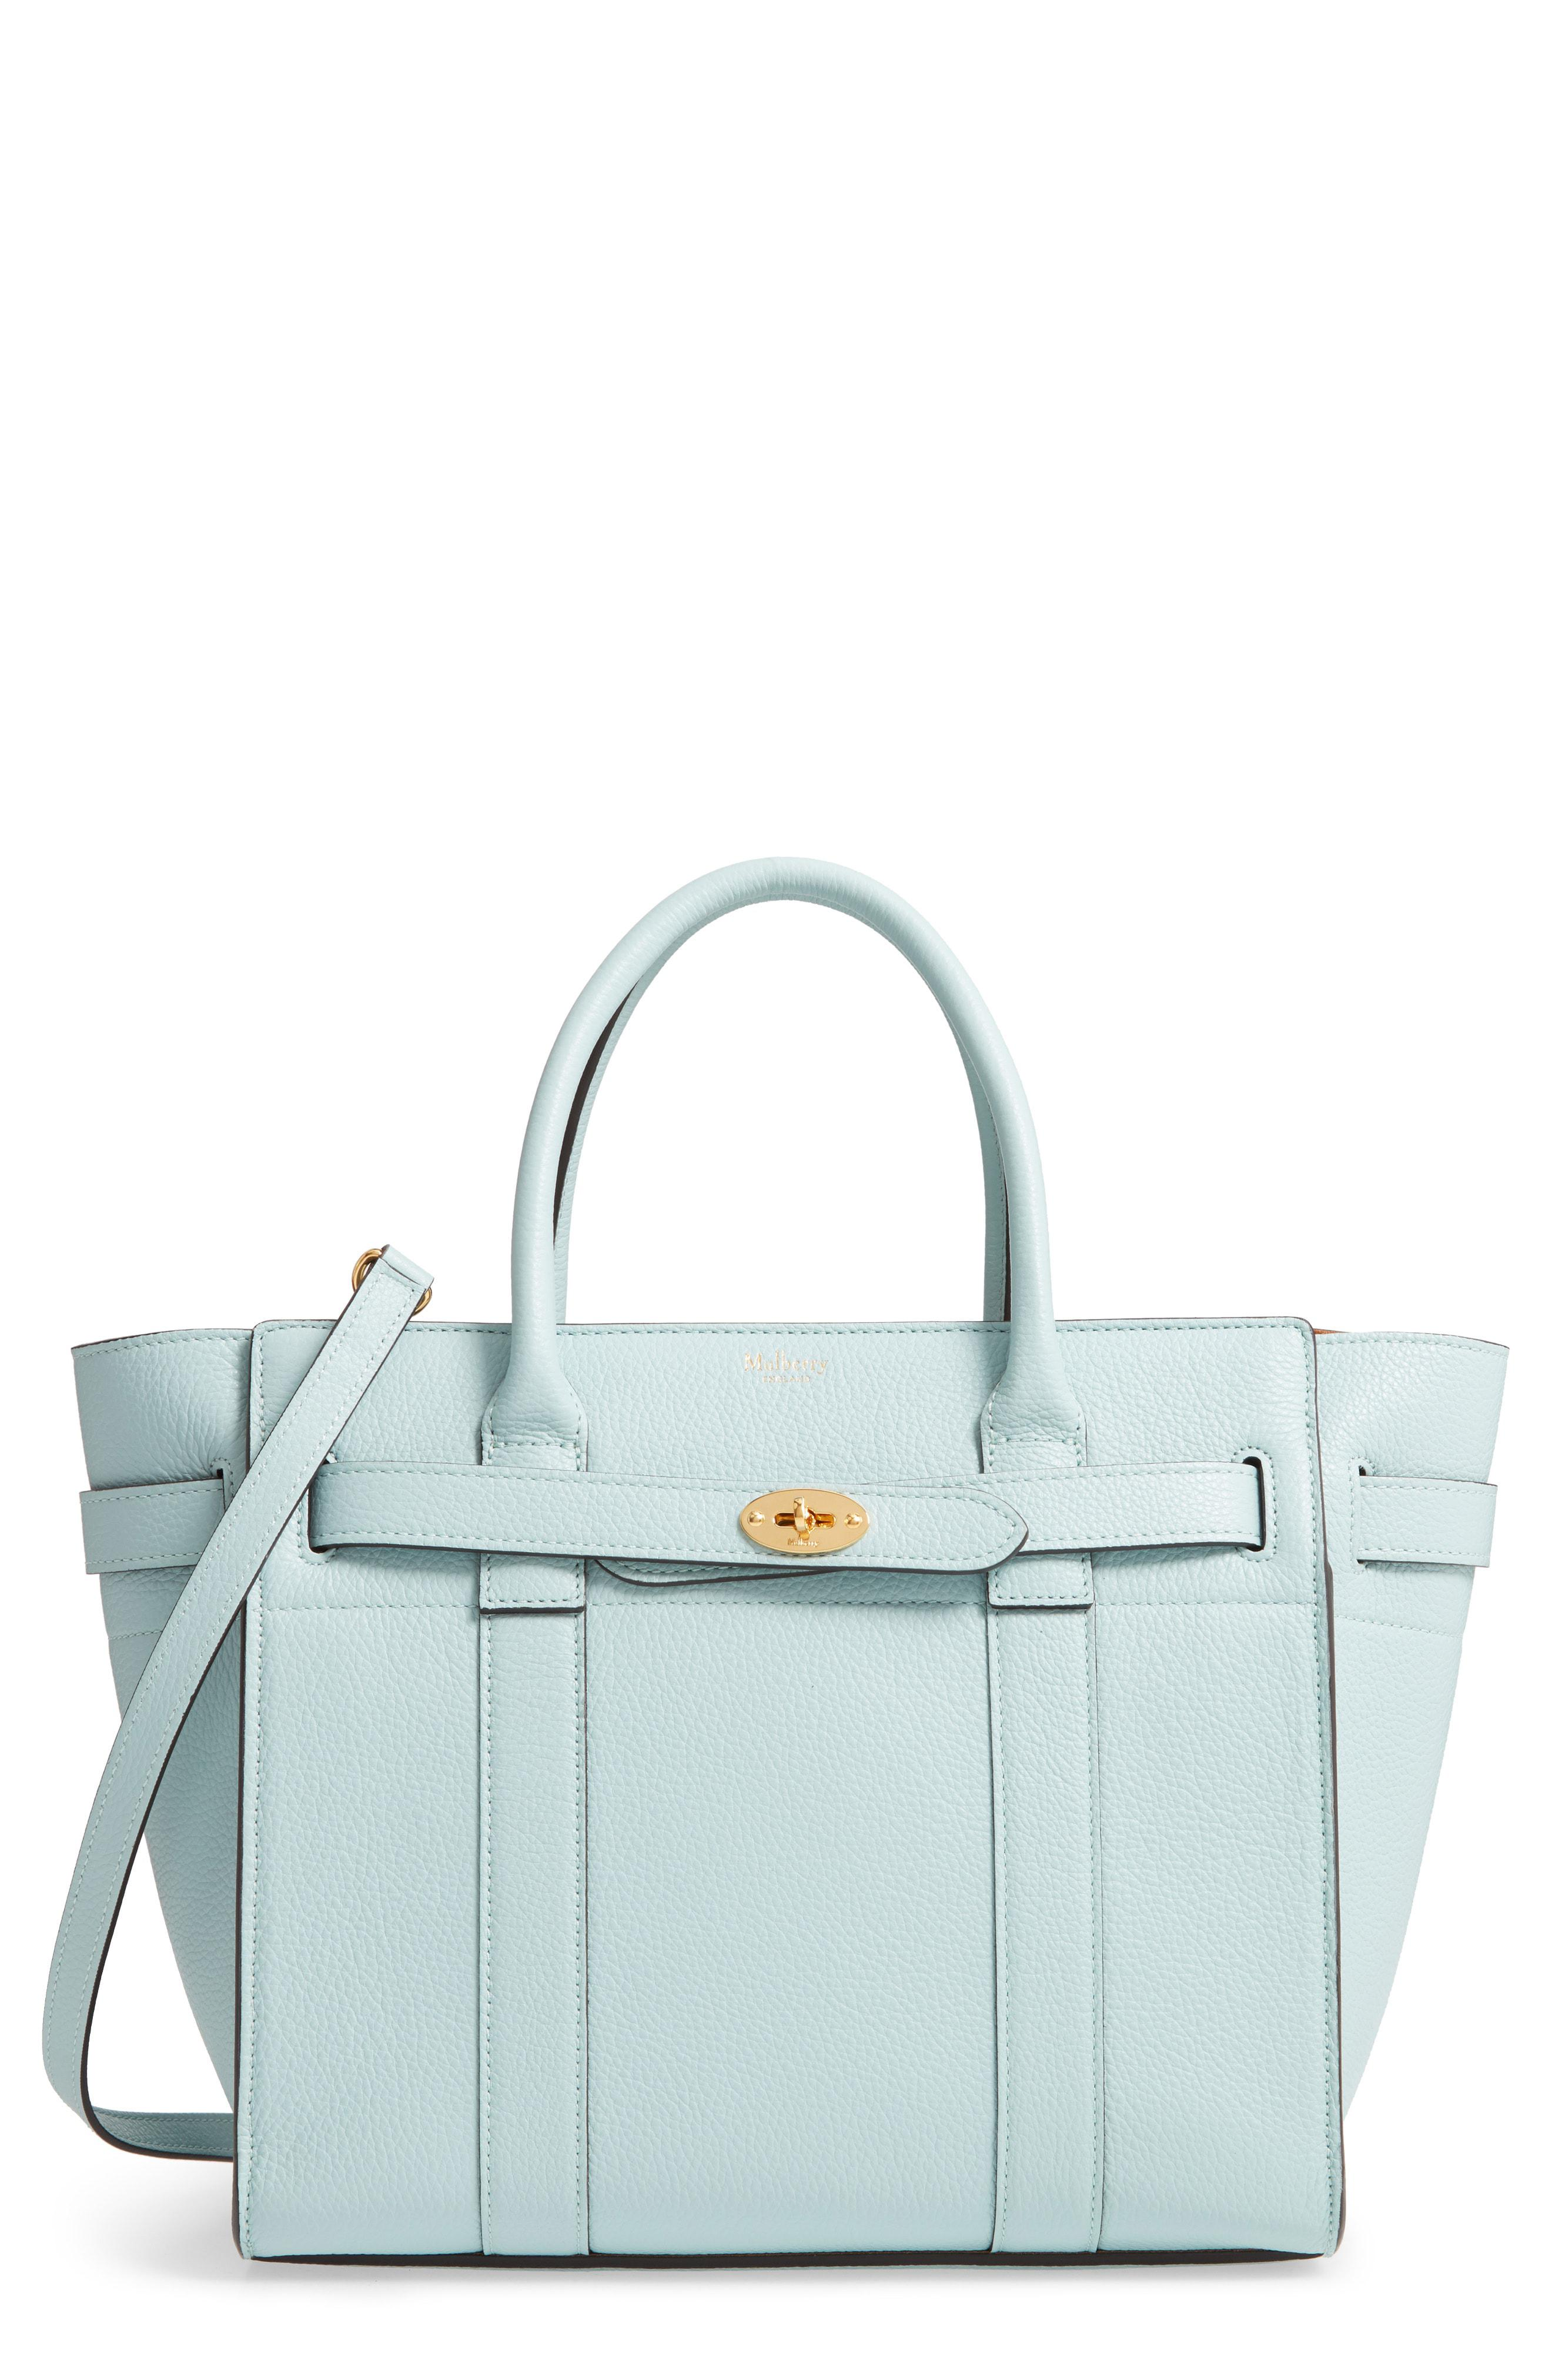 d416e5e9ae26 Lyst - Mulberry Small Zip Bayswater Classic Leather Tote in Blue